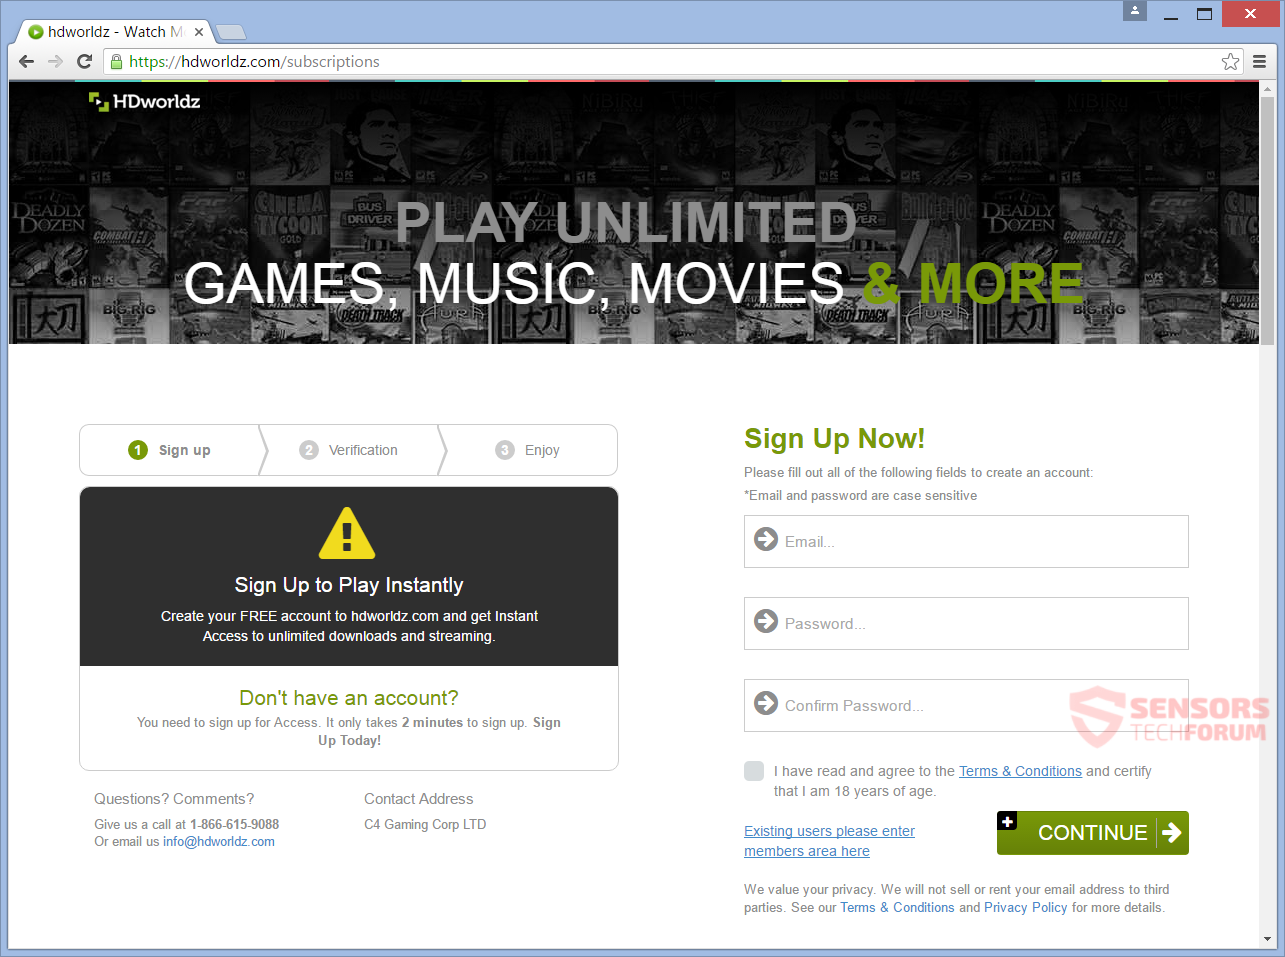 SensorsTechForum-hdworldz-com-hd-worldz-movies-games-music-registration